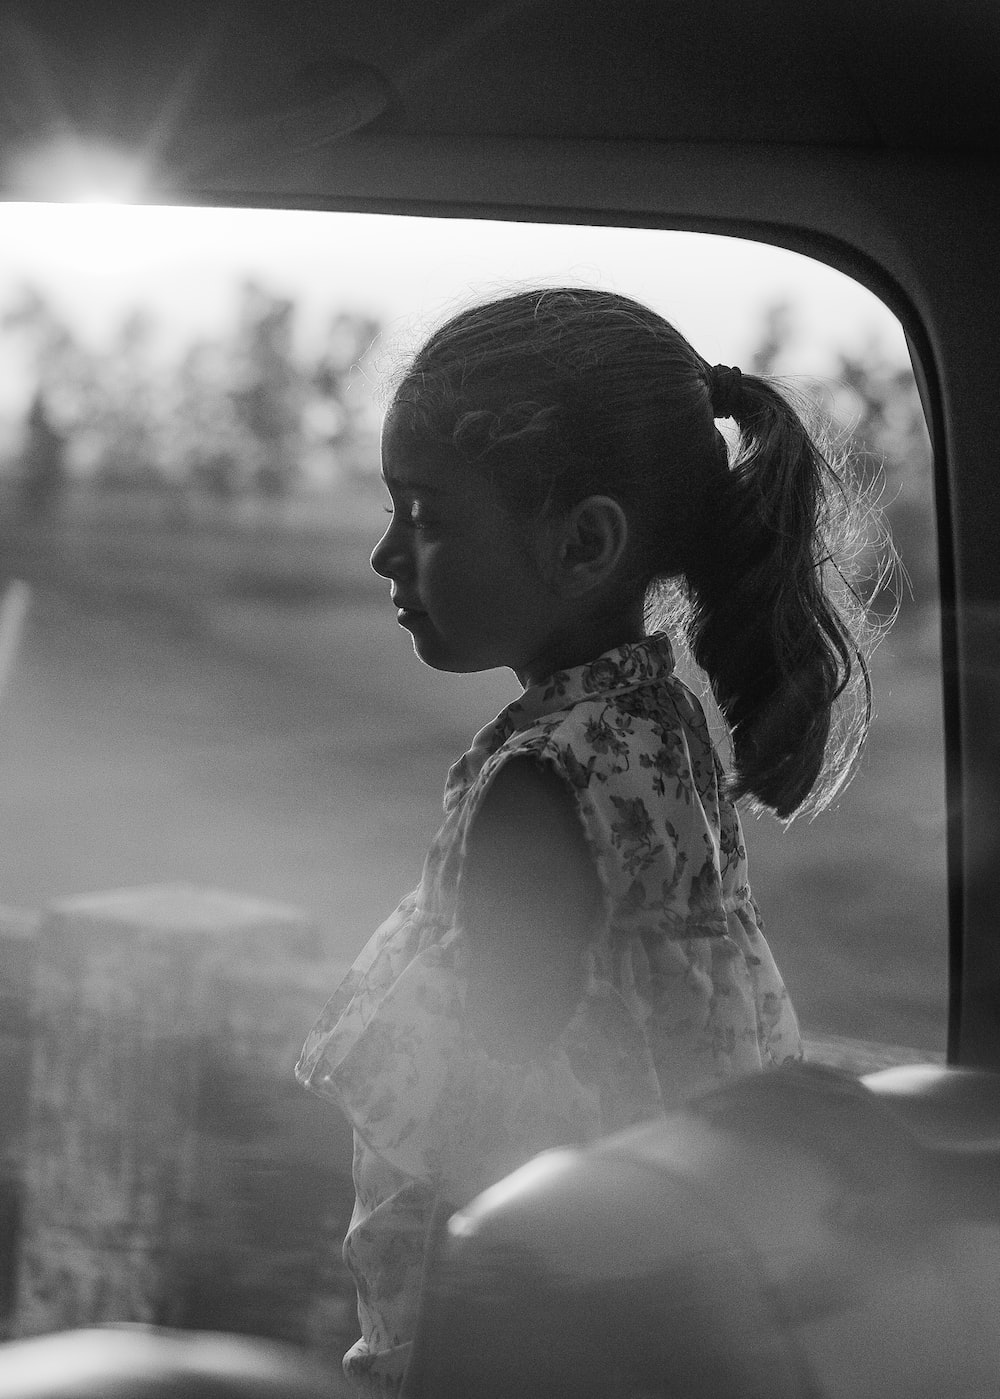 girl in white floral dress sitting on car seat